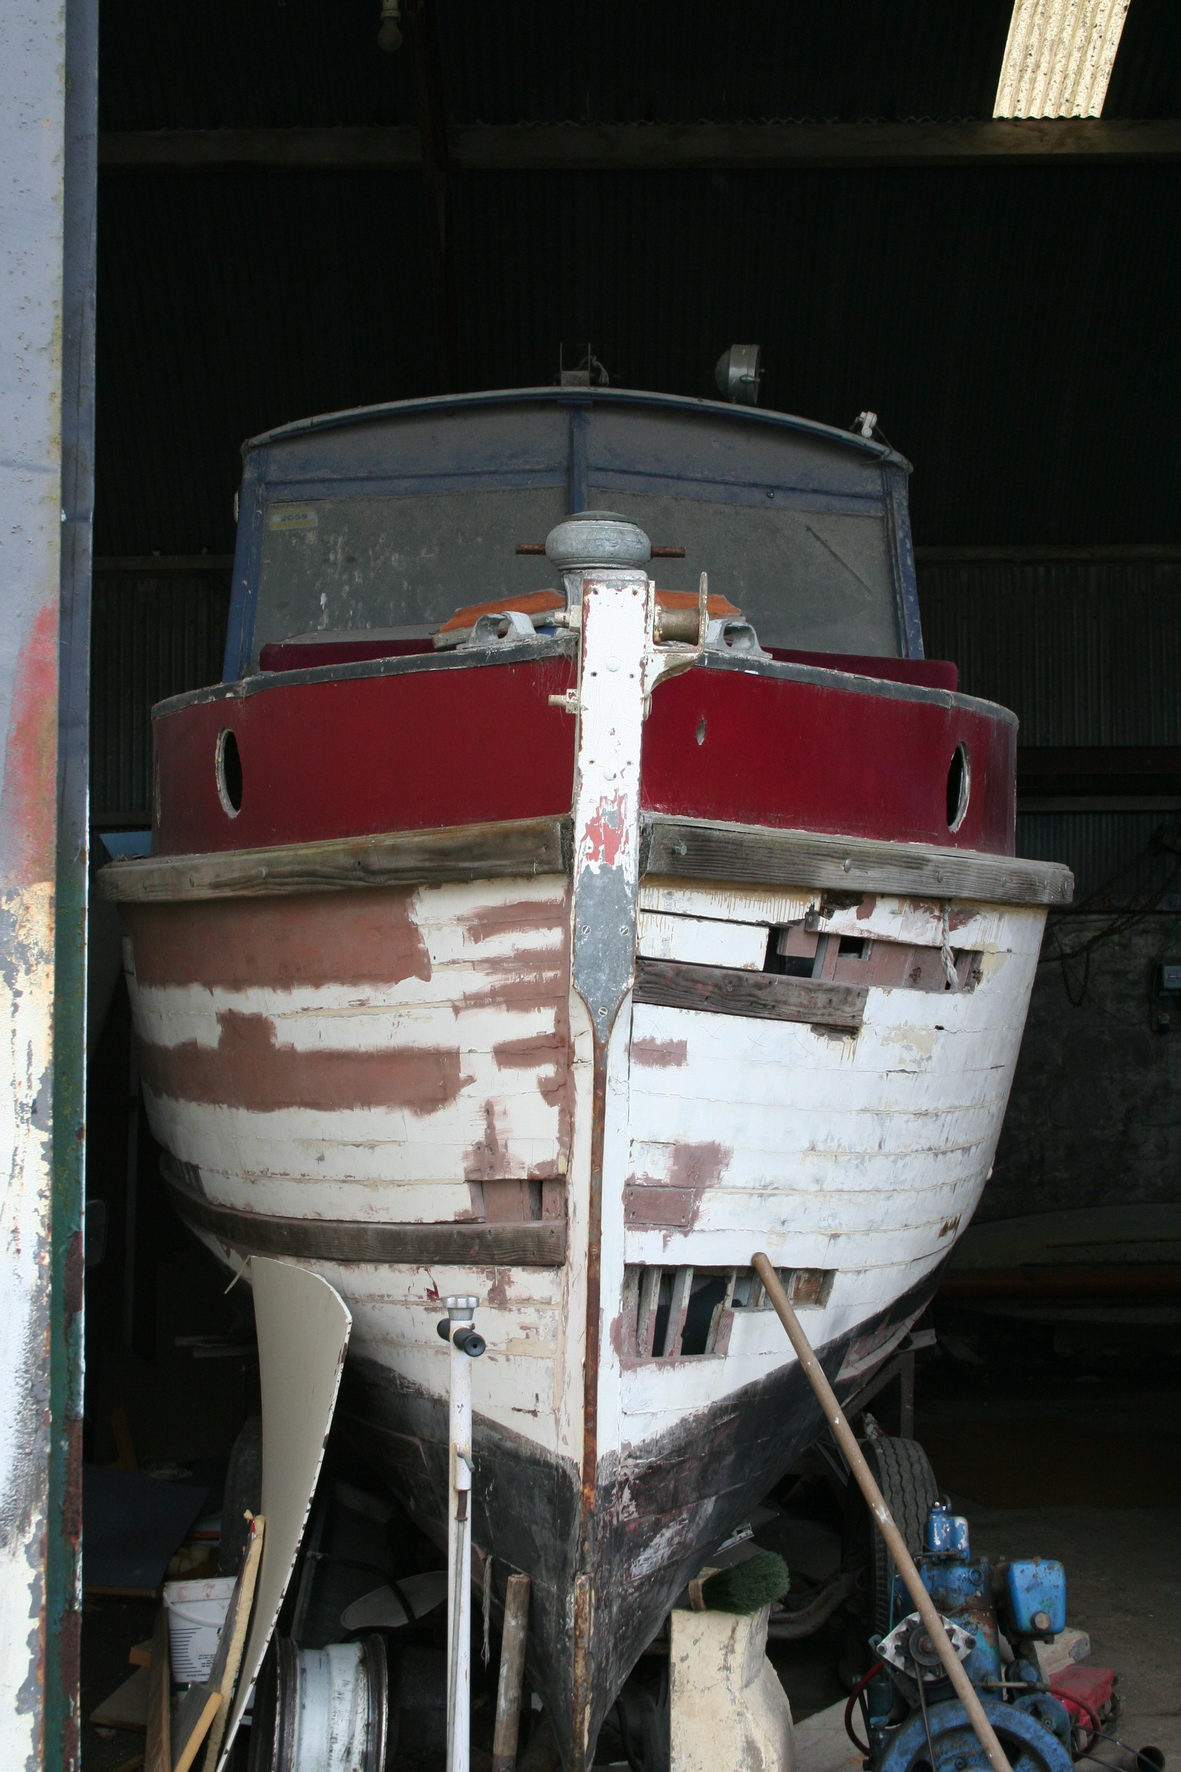 Cruiser in the shed (bows on)